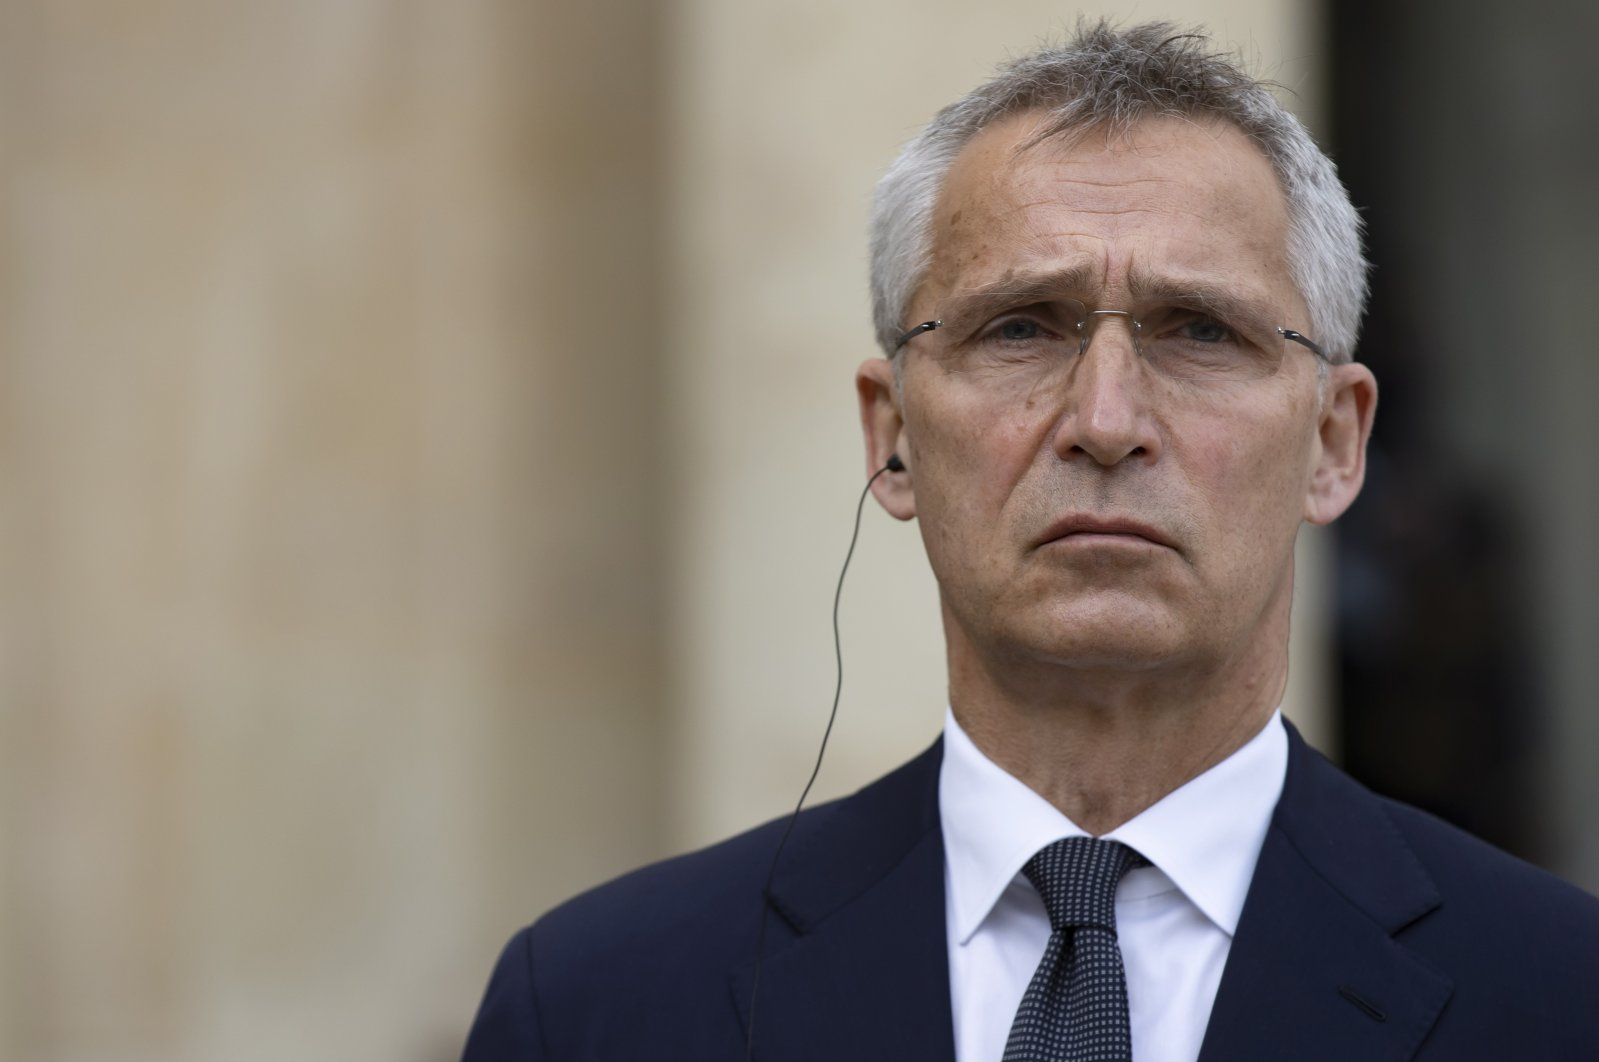 NATO Secretary-General Jens Stoltenberg looks on during a joint statement with French President Emmanuel Macron after their meeting at the Elysee Palace, Paris, France, 21 May 2021. (EPA Photo)